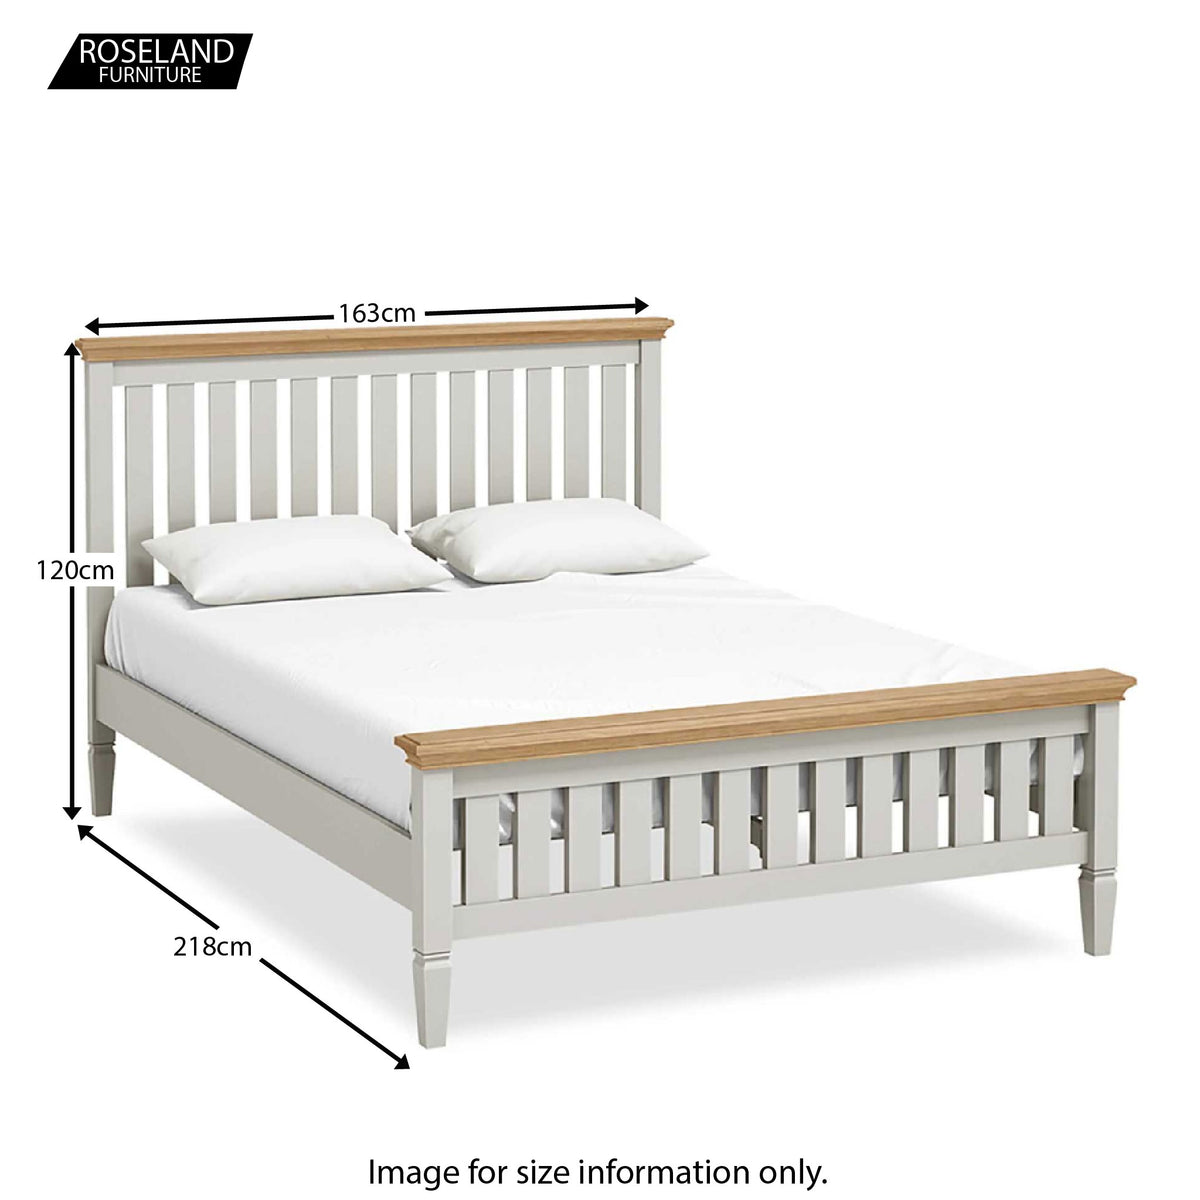 Normandy Grey 5' King Size Bed - Size Guide